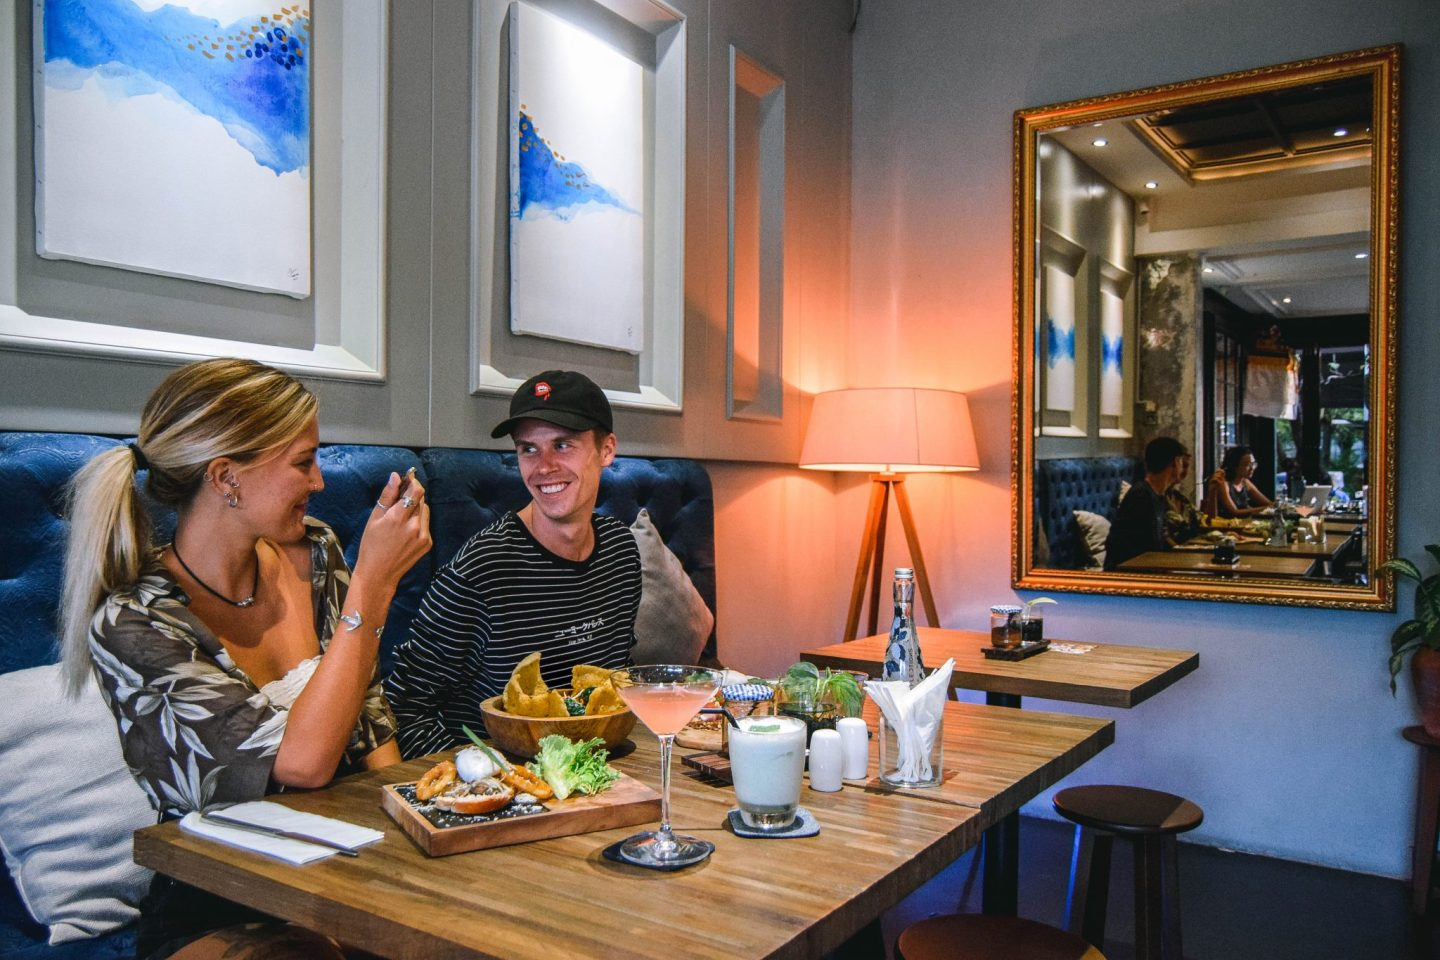 Wanderers & Warriors - Charlie & Lauren UK Travel Couple - Doncaster Eatery Restaurant Seminyak Bali - Best Restaurants In Bali Food - Best Restaurants In Seminyak